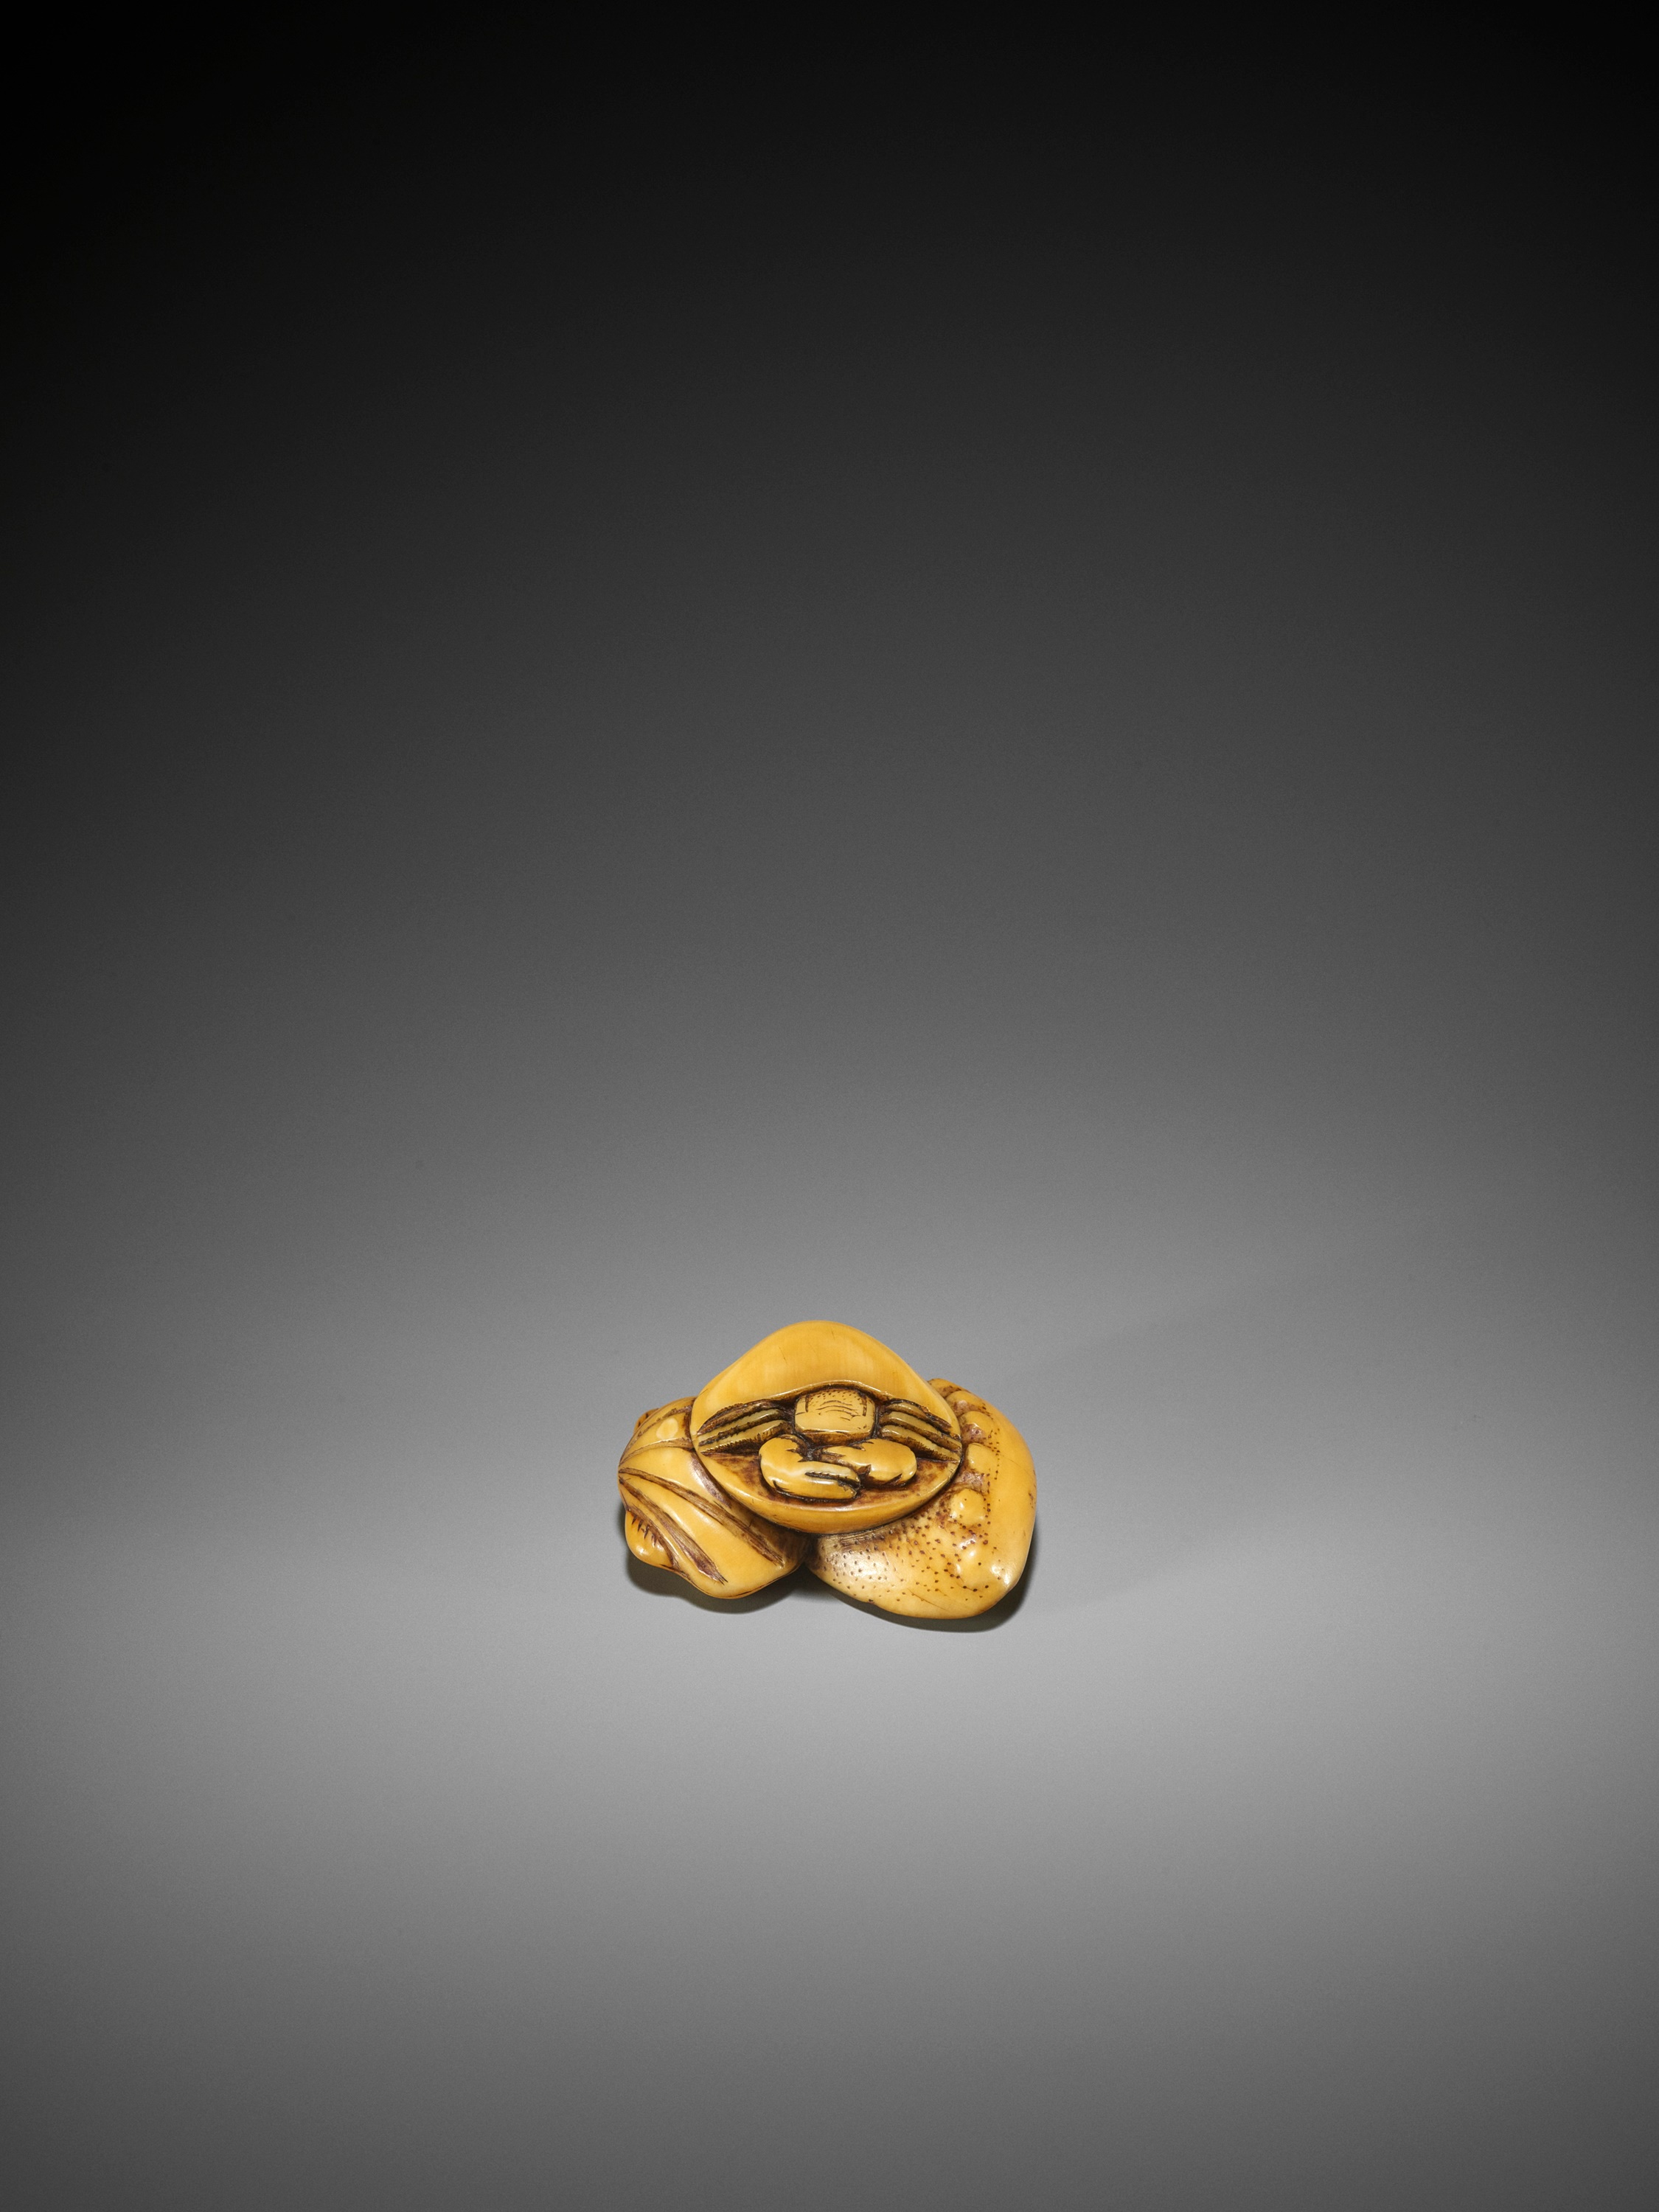 AN EARLY IVORY NETSUKE OF A HERMIT CRAB AND SHELLS - Image 2 of 3